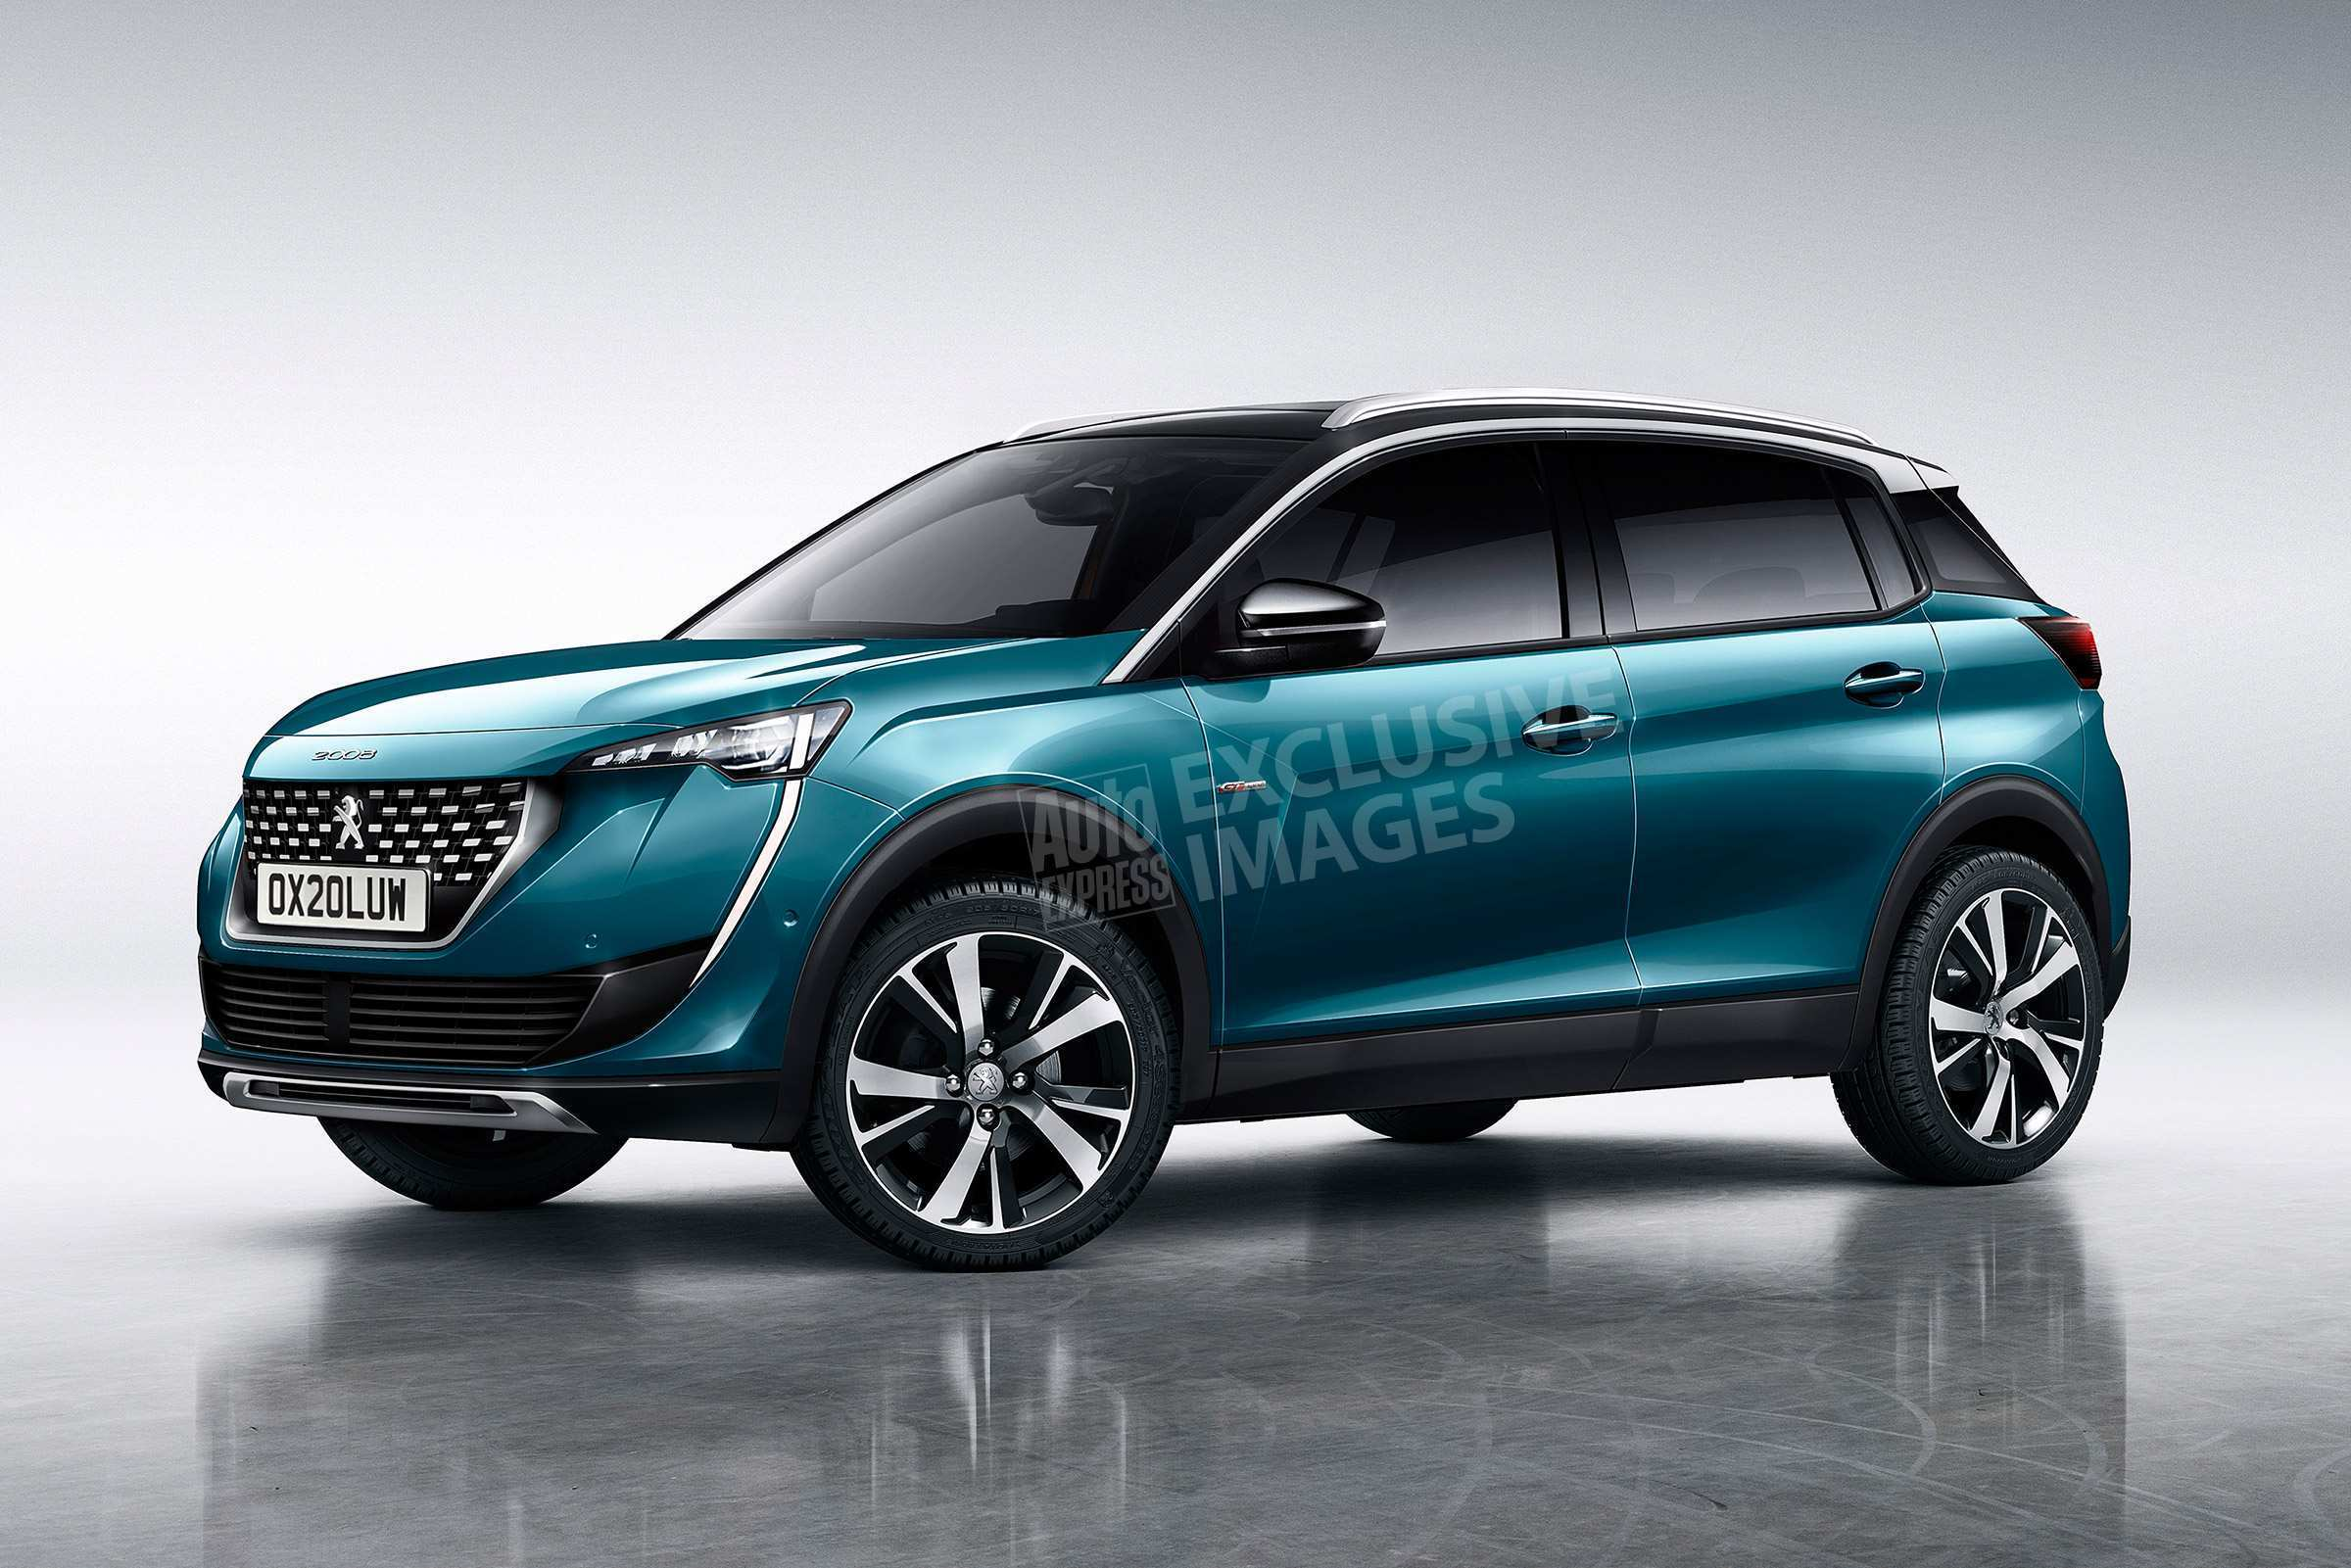 12 All New Peugeot News 2019 Specs by Peugeot News 2019